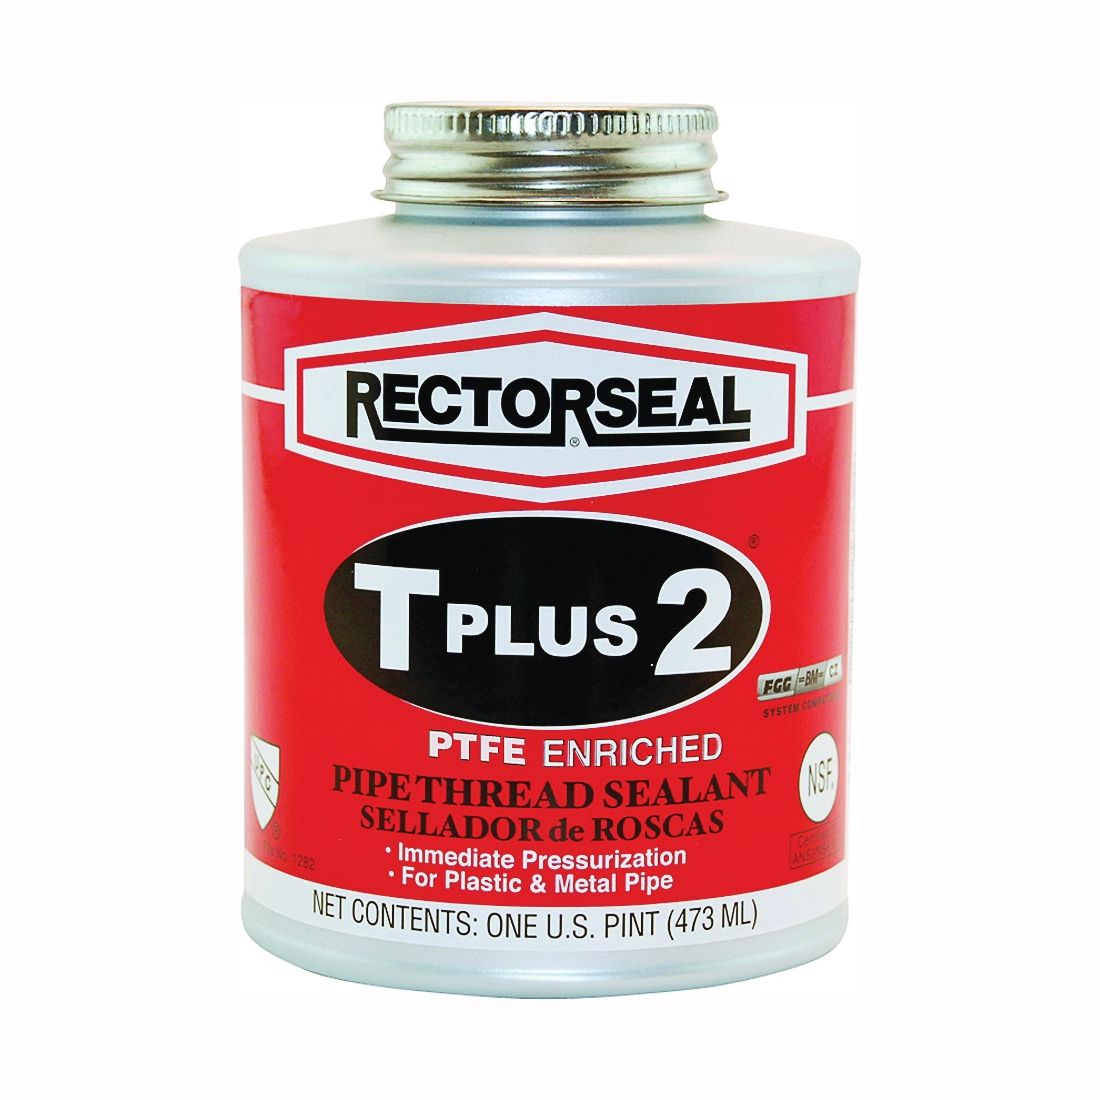 Picture of RECTORSEAL T Plus 2 23431 Thread Sealant, 1 pt, Can, Paste, White